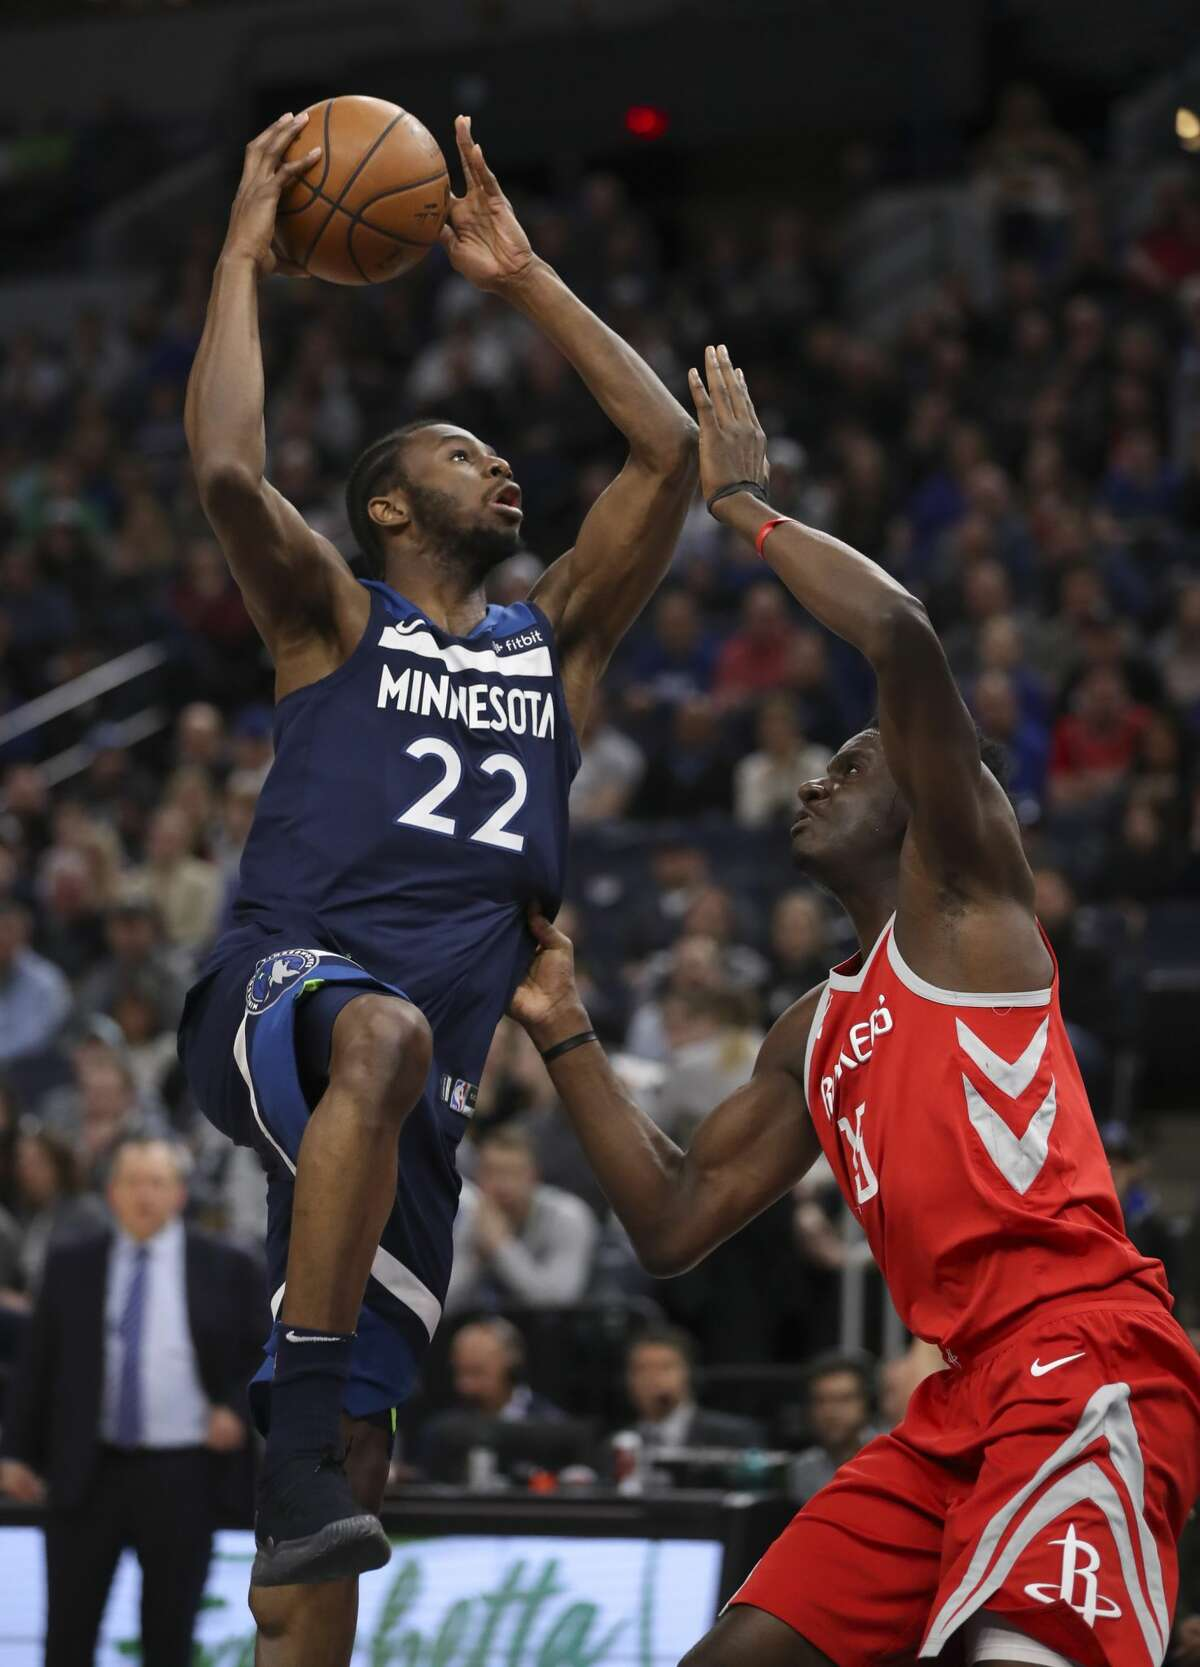 Minnesota Timberwolves forward Andrew Wiggins (22) shoots over Houston Rockets center Clint Capela (15) in the first quarter on Sunday, March 18, 2018 at Target Center in Minneapolis, Minn. The Timberwolves lost to the Rockets, 129-120. (Jeff Wheeler/Minneapolis Star Tribune/TNS)